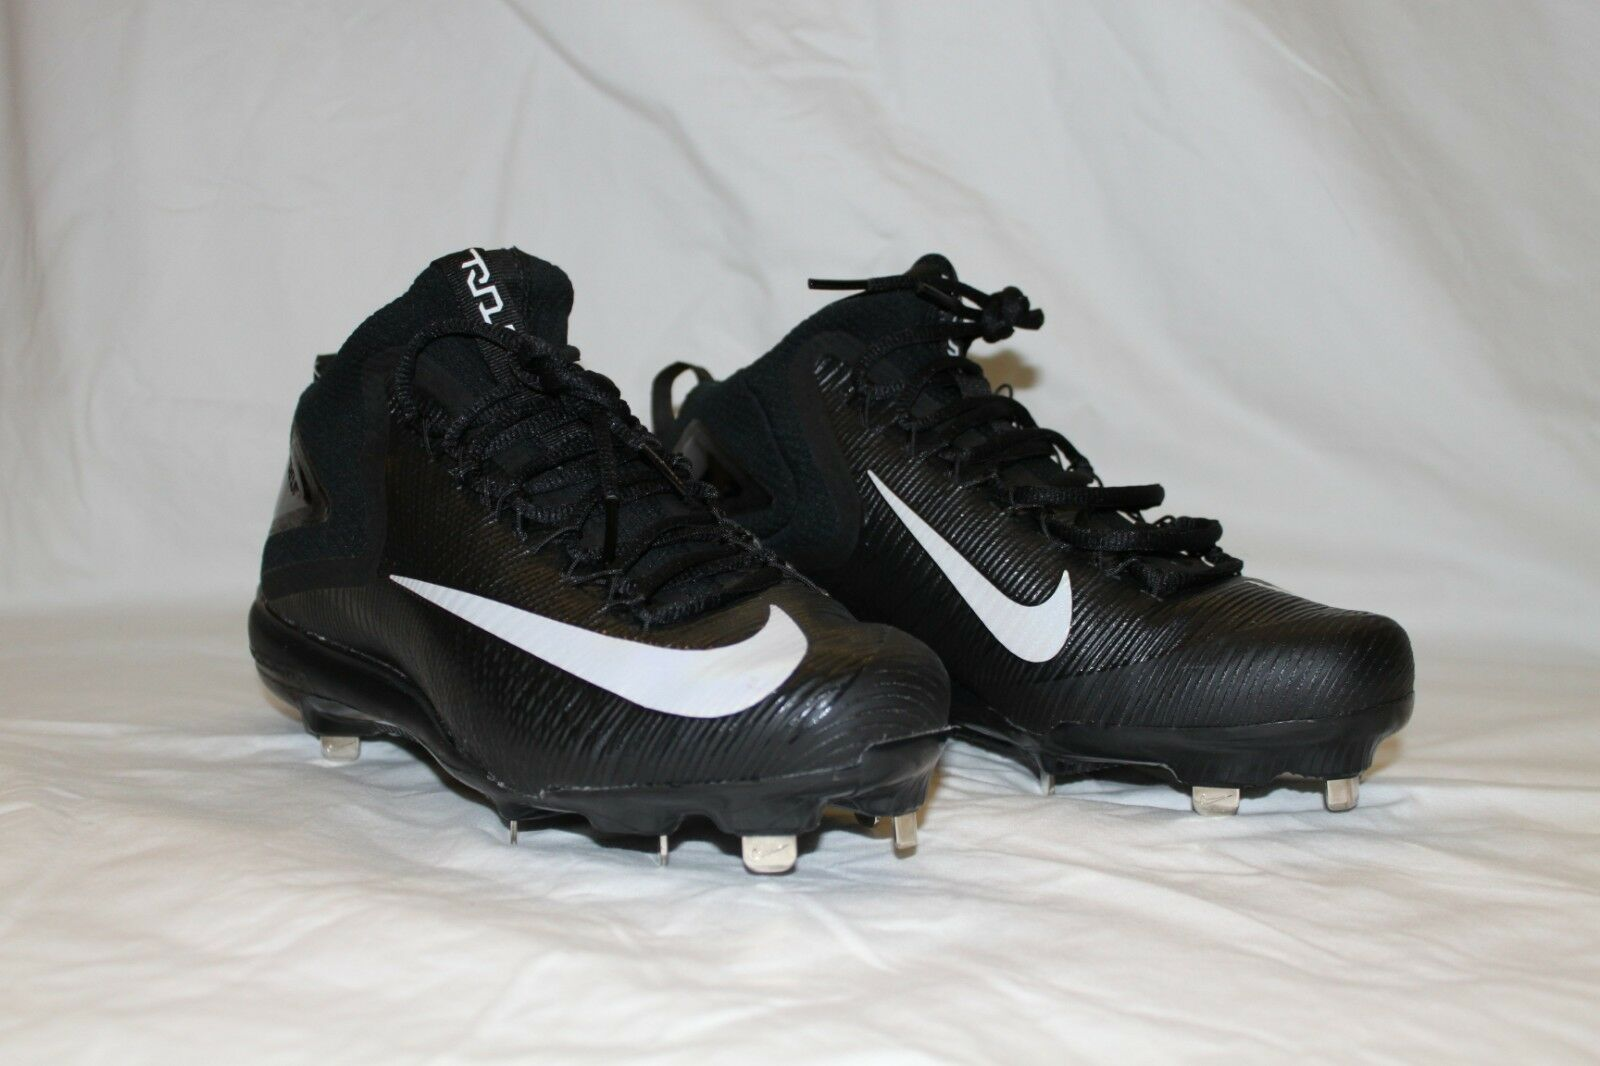 NIKE Mens Zoom Trout 3 Baseball Cleat Spikes Max